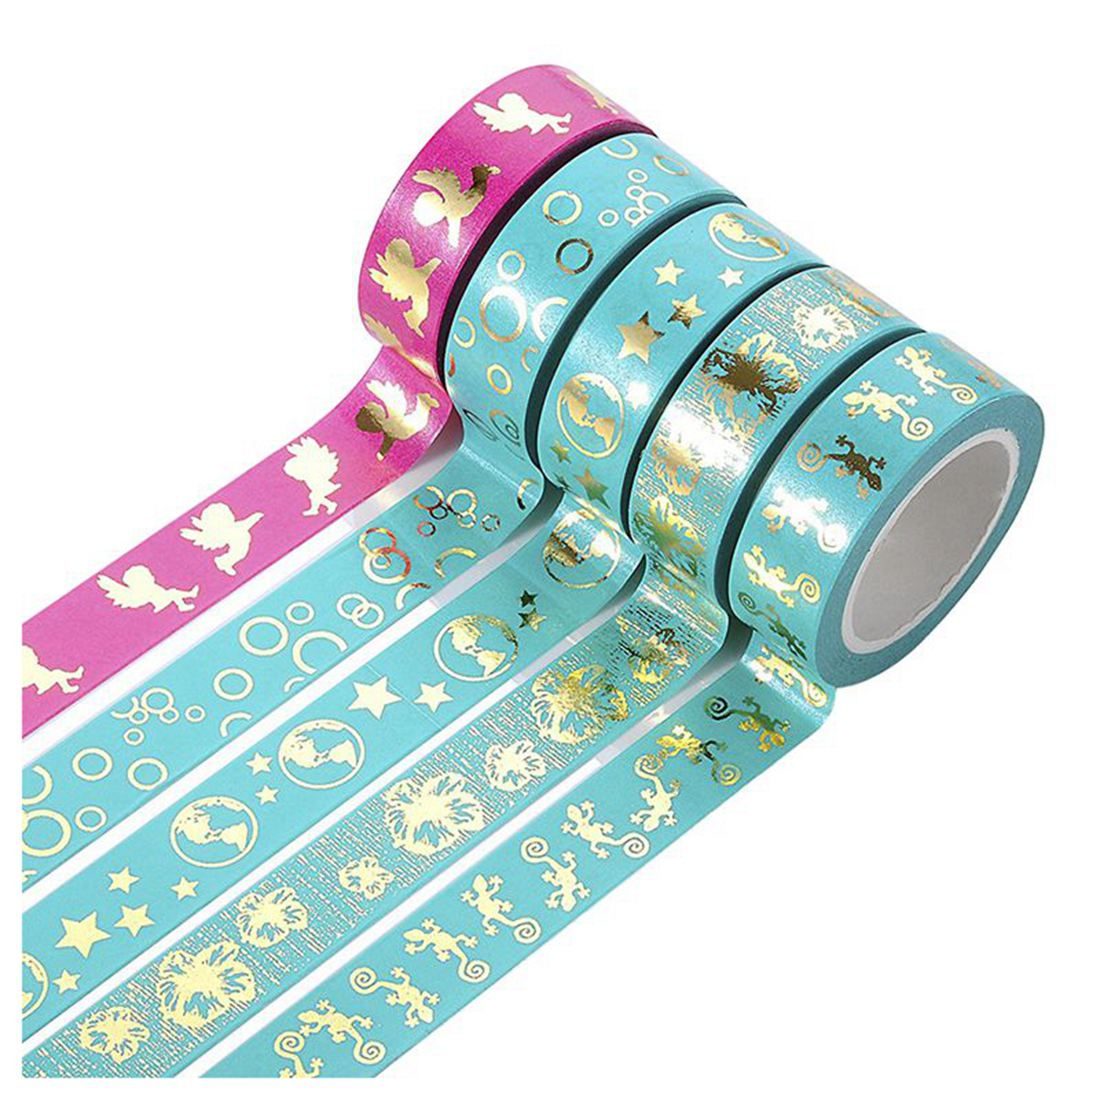 Decorative DIY Tape Washi Sticky Paper Foil Masking Adhesive Washi Tape For Scrapbooking DIY Decoration 5xRoll, aagu 1pc 15mm 5m new design colorful floral washi tape wide flower masking tape diy fita decorativa sticky paper adhesive tape